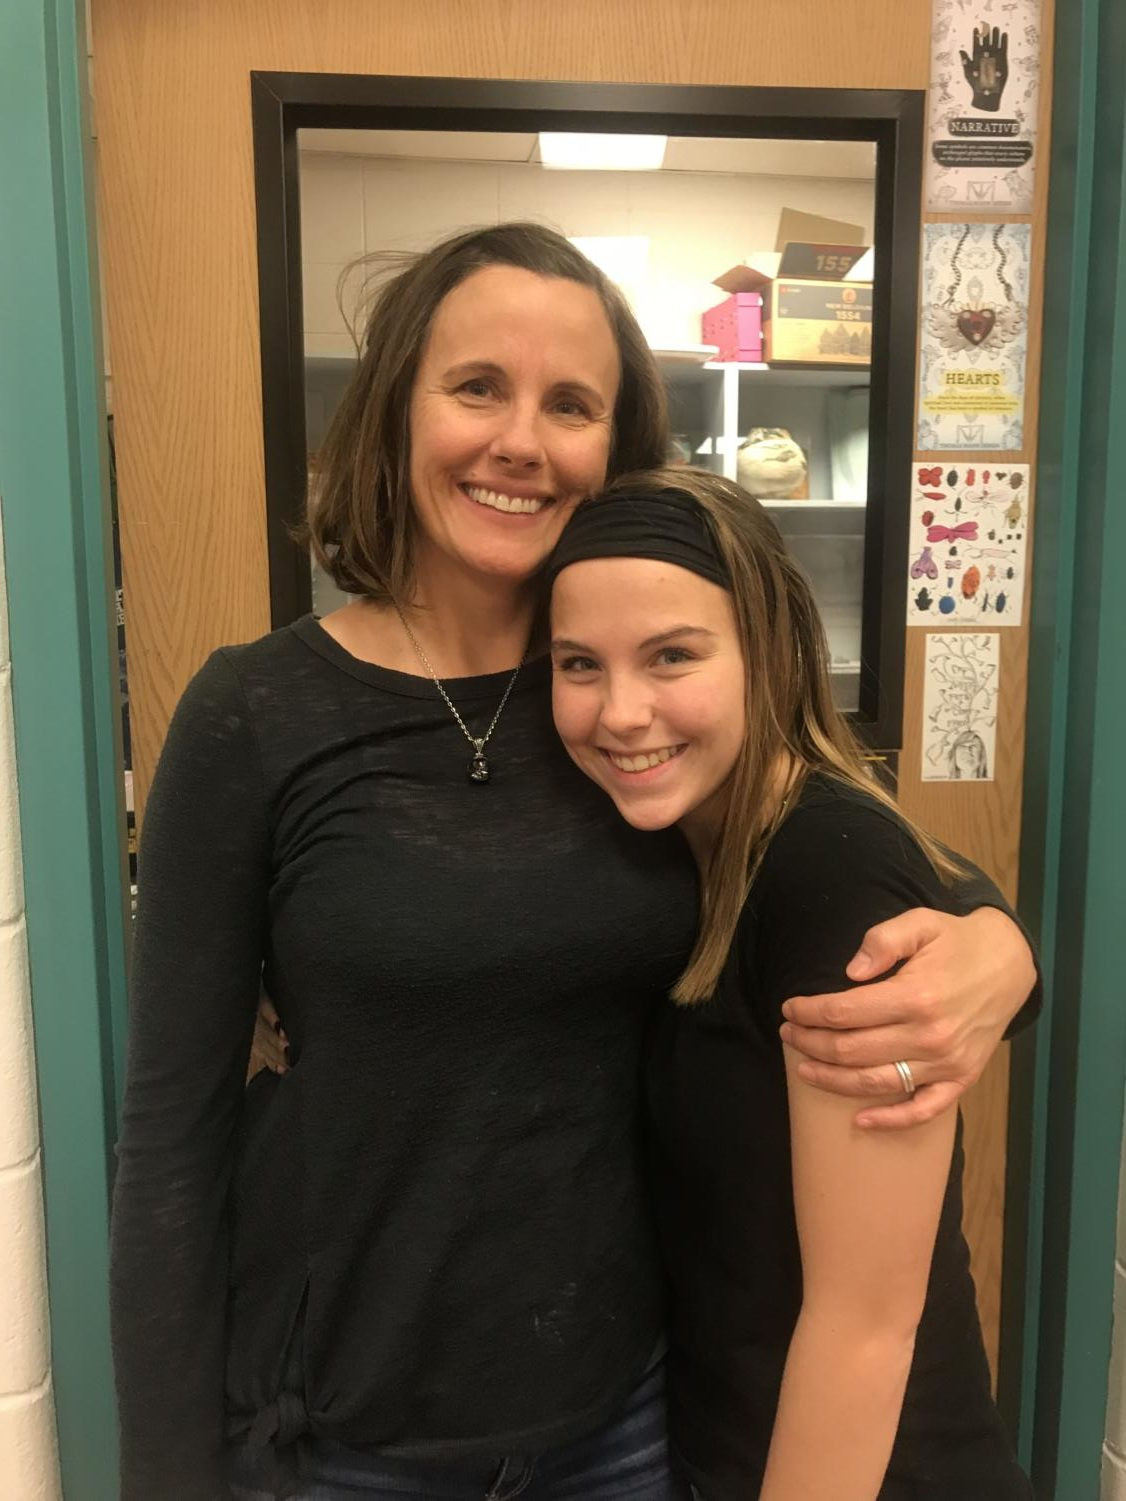 Senior+Maggie+Cronen+Is+another+art+teacher%E2%80%99s+kid+at+Rocky.+She+said%2C+%E2%80%9CThe+best+part+is+I+can+see+her+whenever+I+want.%E2%80%9D+When+it+comes+to+the+one+thing+that+really+gets+on+Maggie%E2%80%99s+nerves%2C+%E2%80%9Cis+when+I+find+out+some+tea+and+go+to+tell+my+mom+and+she+tells+me+%E2%80%98I+already+knew+that.%E2%80%99%E2%80%9D+